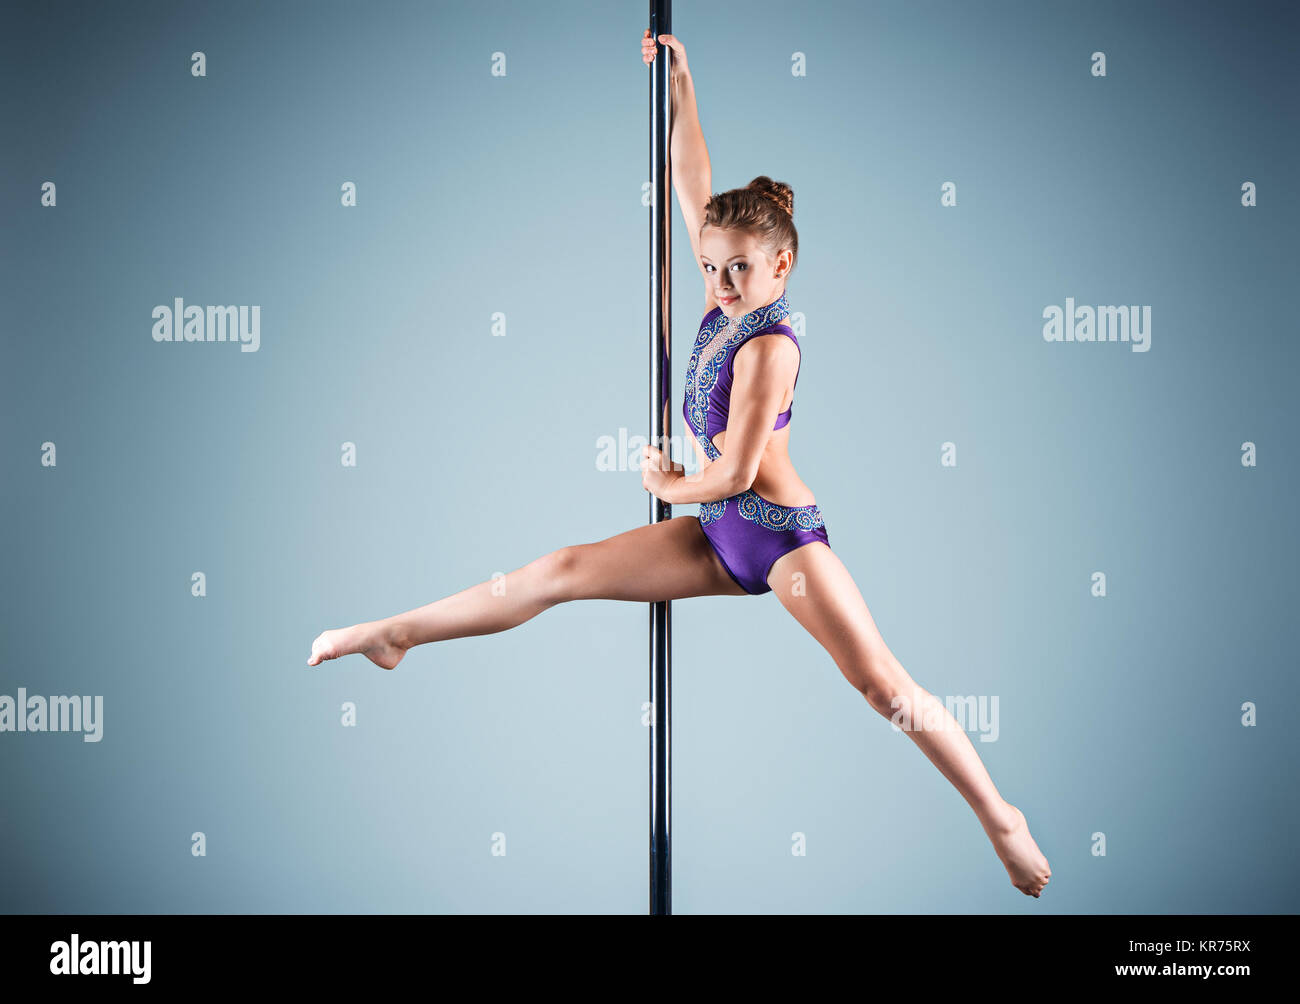 Has surprised New girl on the stripper pole